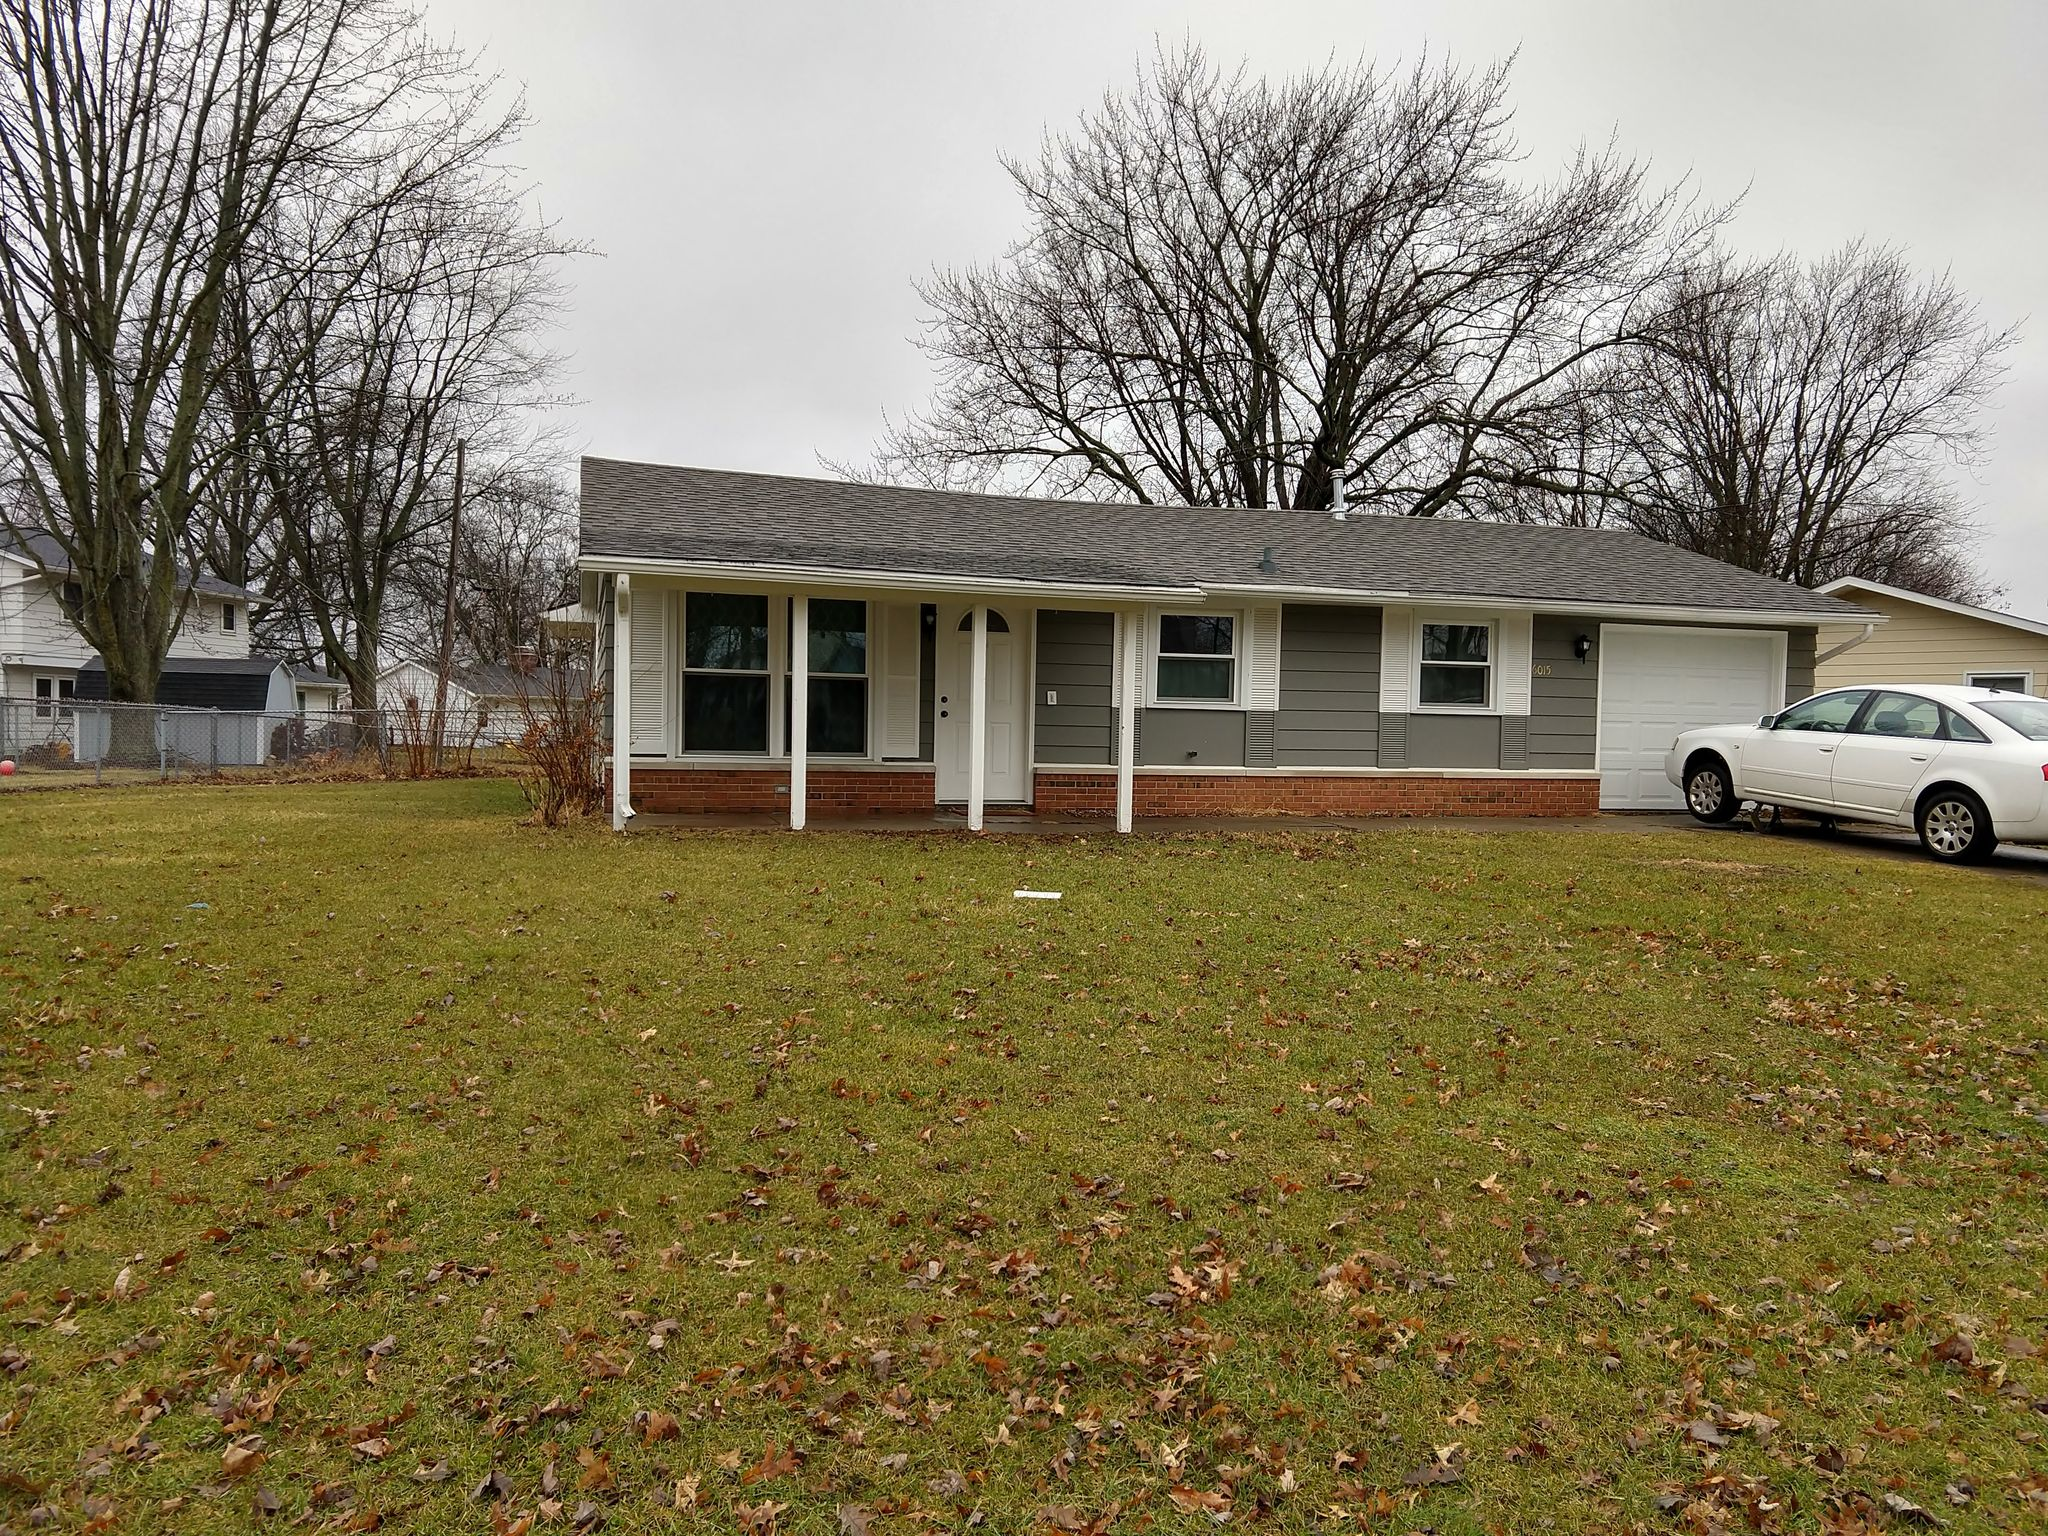 6015 Glenview Dr, Fort Wayne, IN 46815 - Estimate and Home Details ...